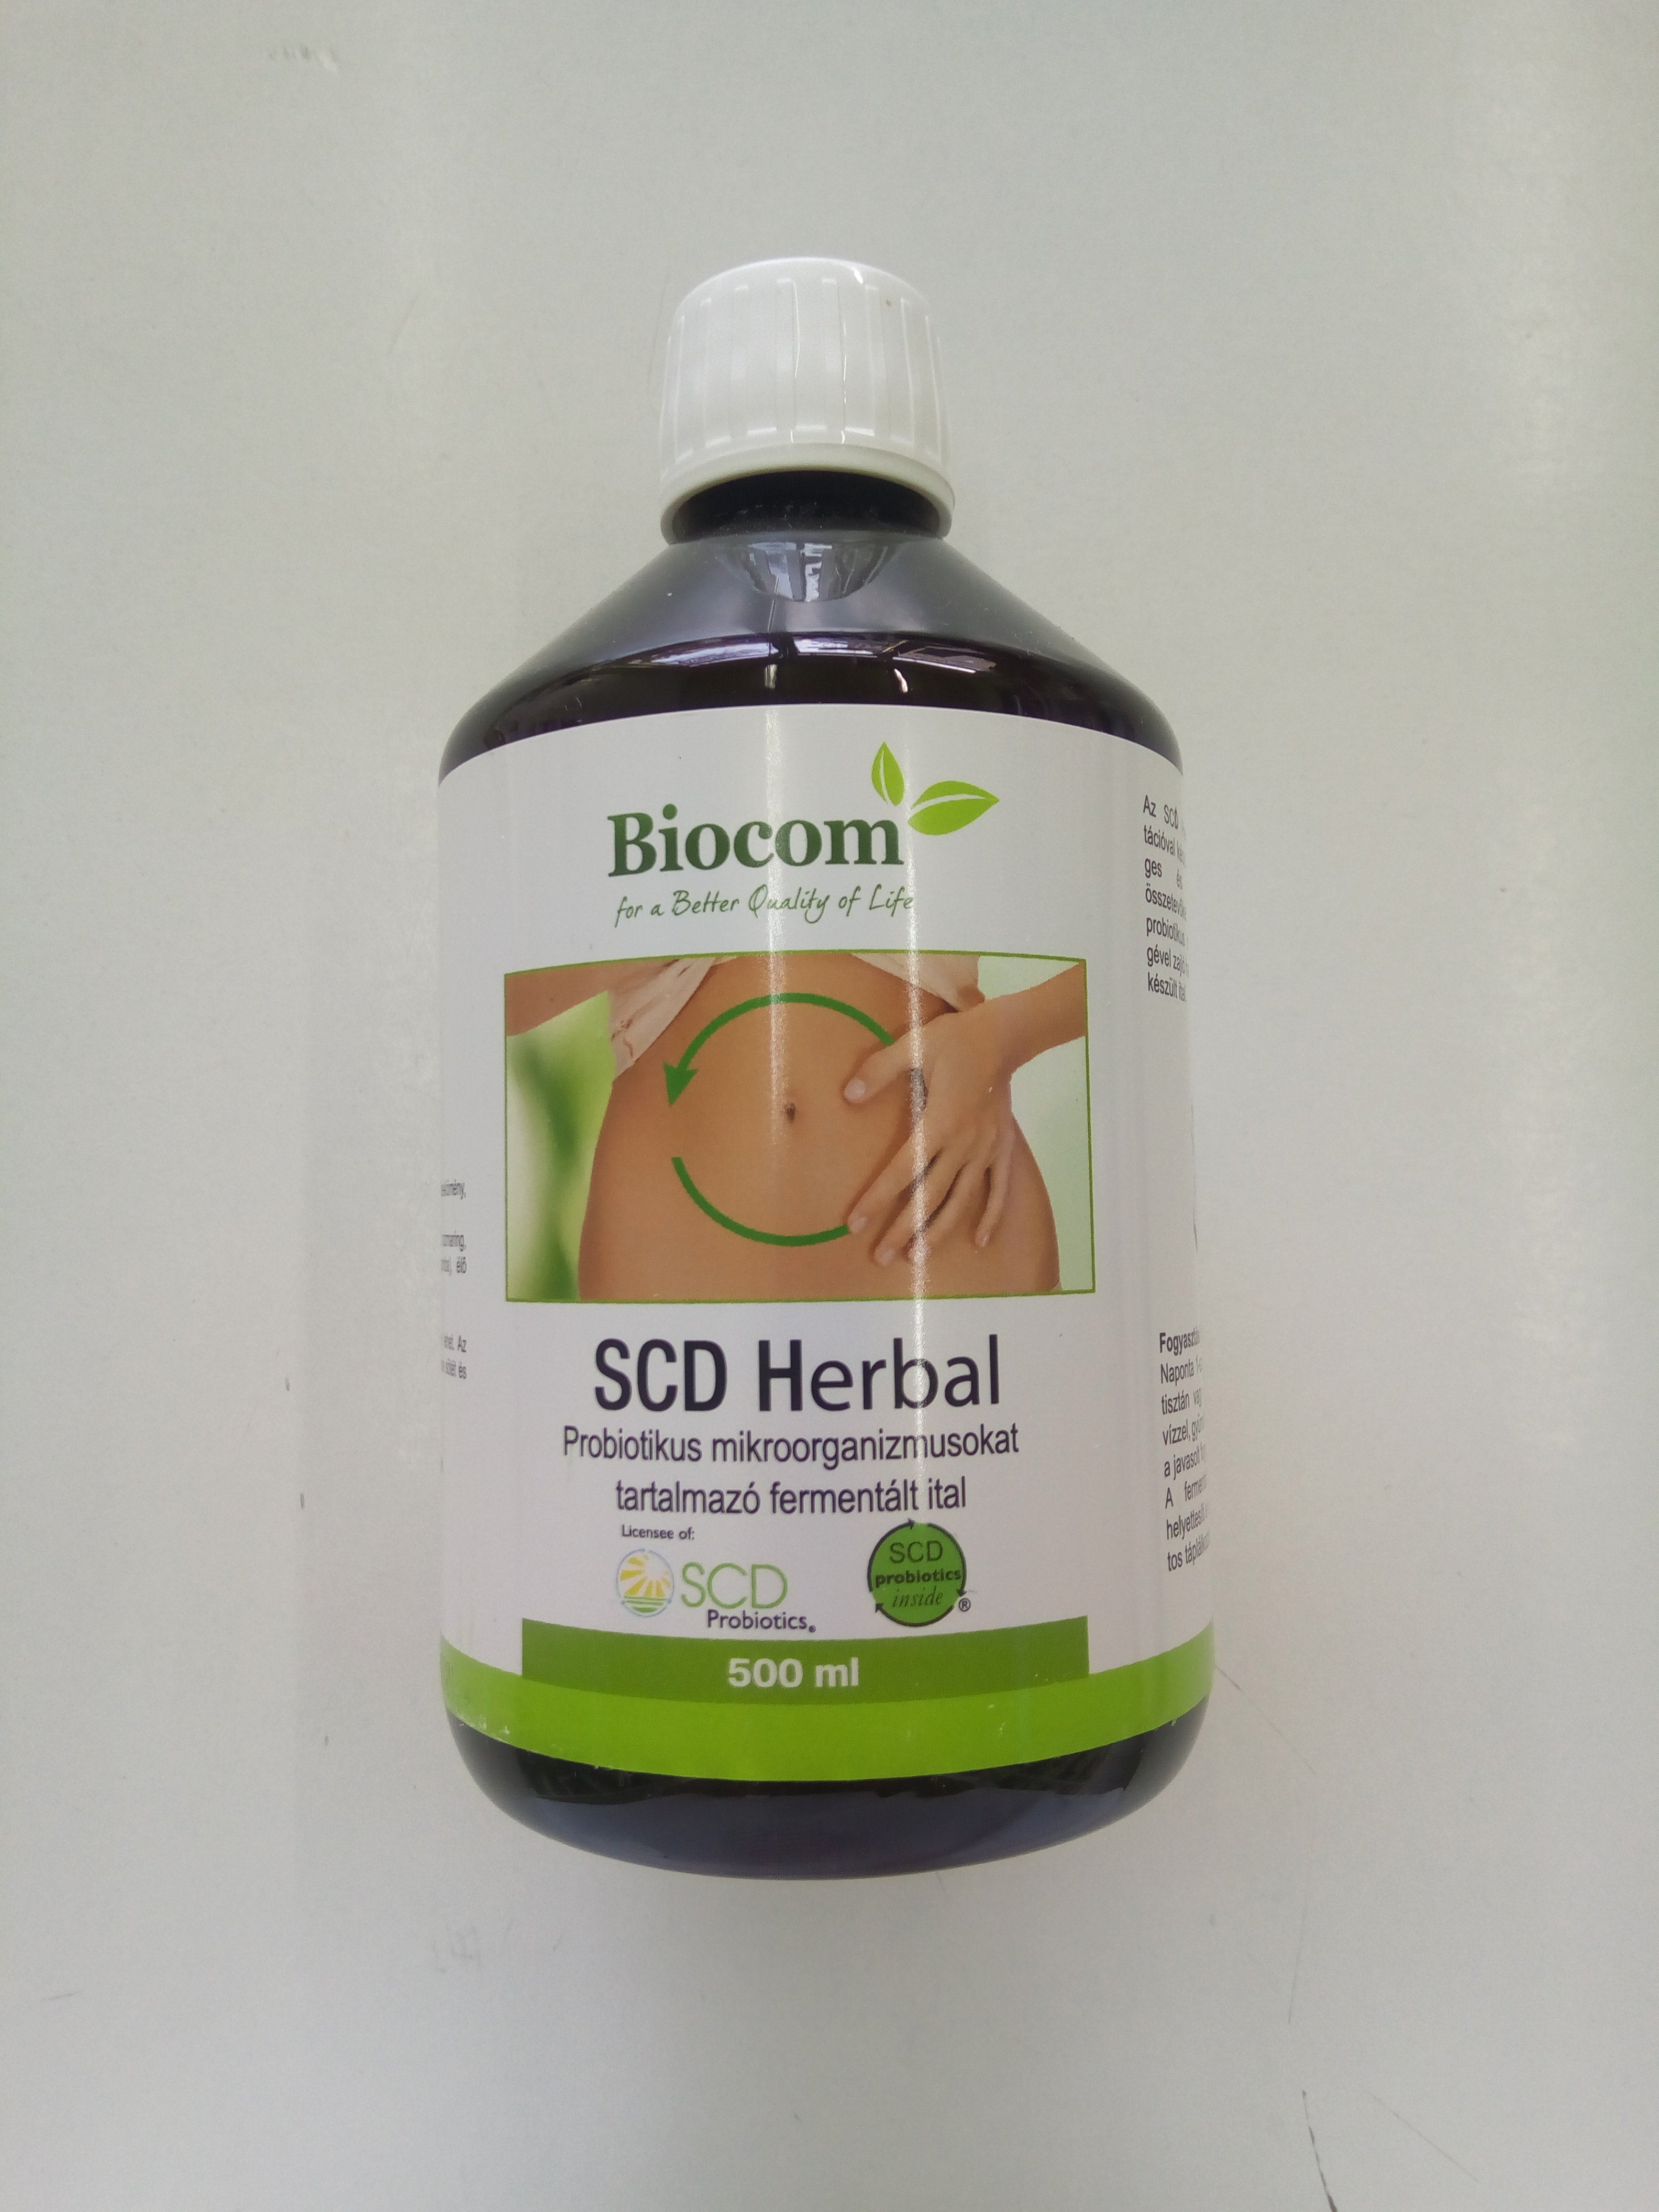 Biocom SCD Herbal (probiotski fermentisani napitak) 500 ml 00464